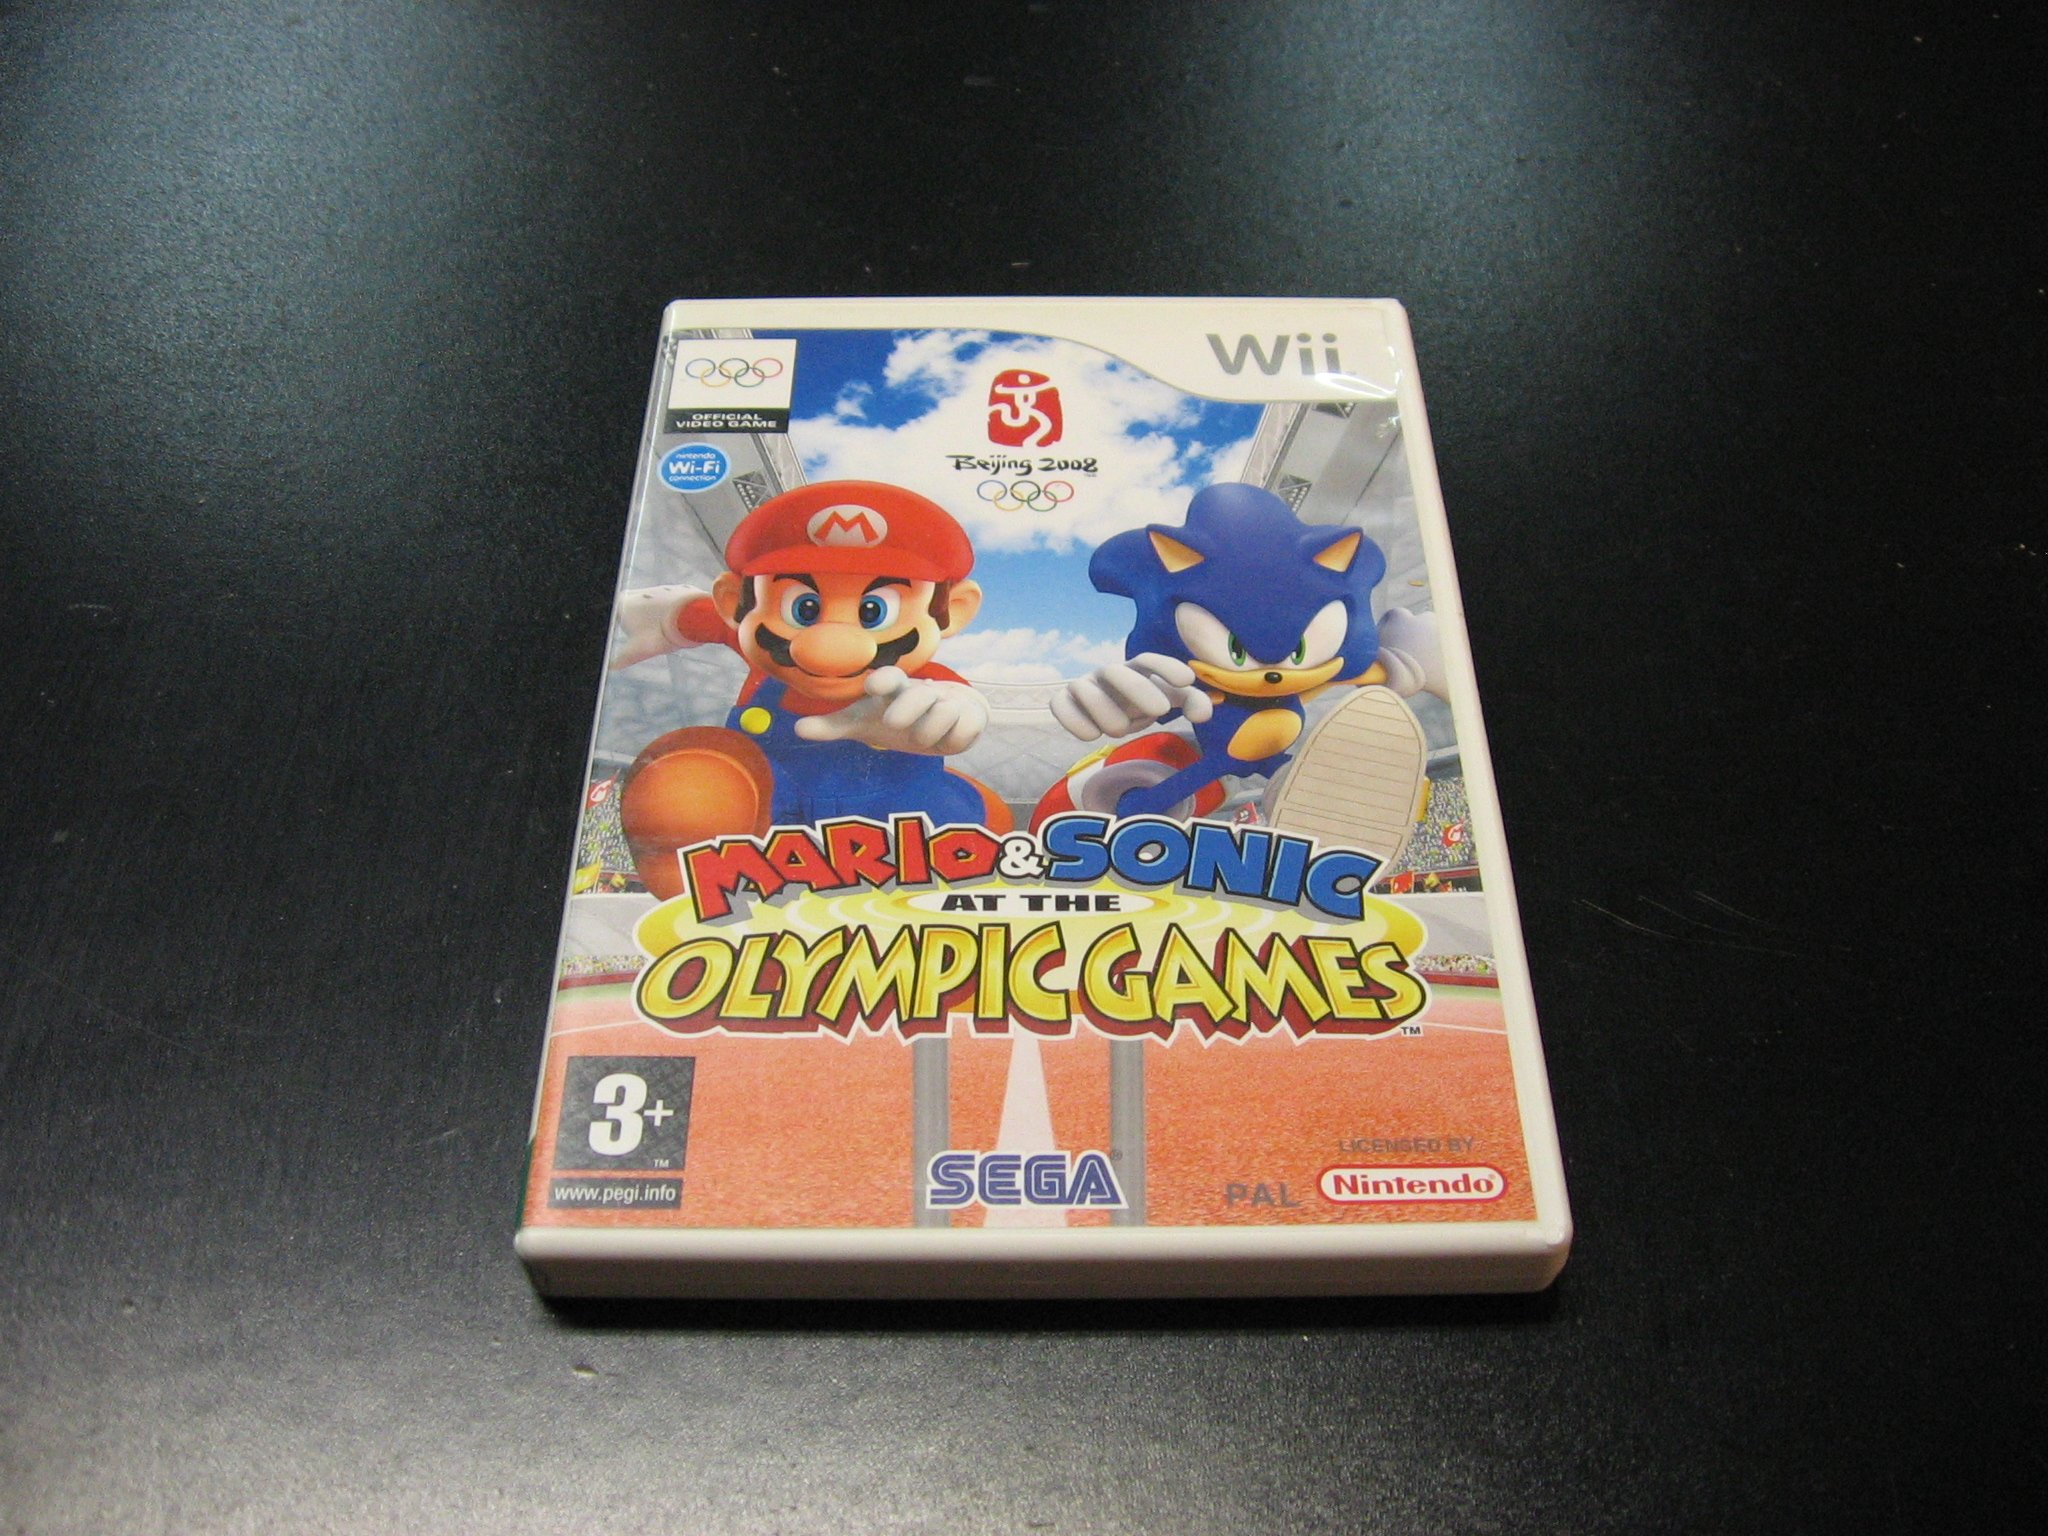 MARIO & SONIC AT THE OLYMPIC GAMES - GRA Nintendo Wii Sklep